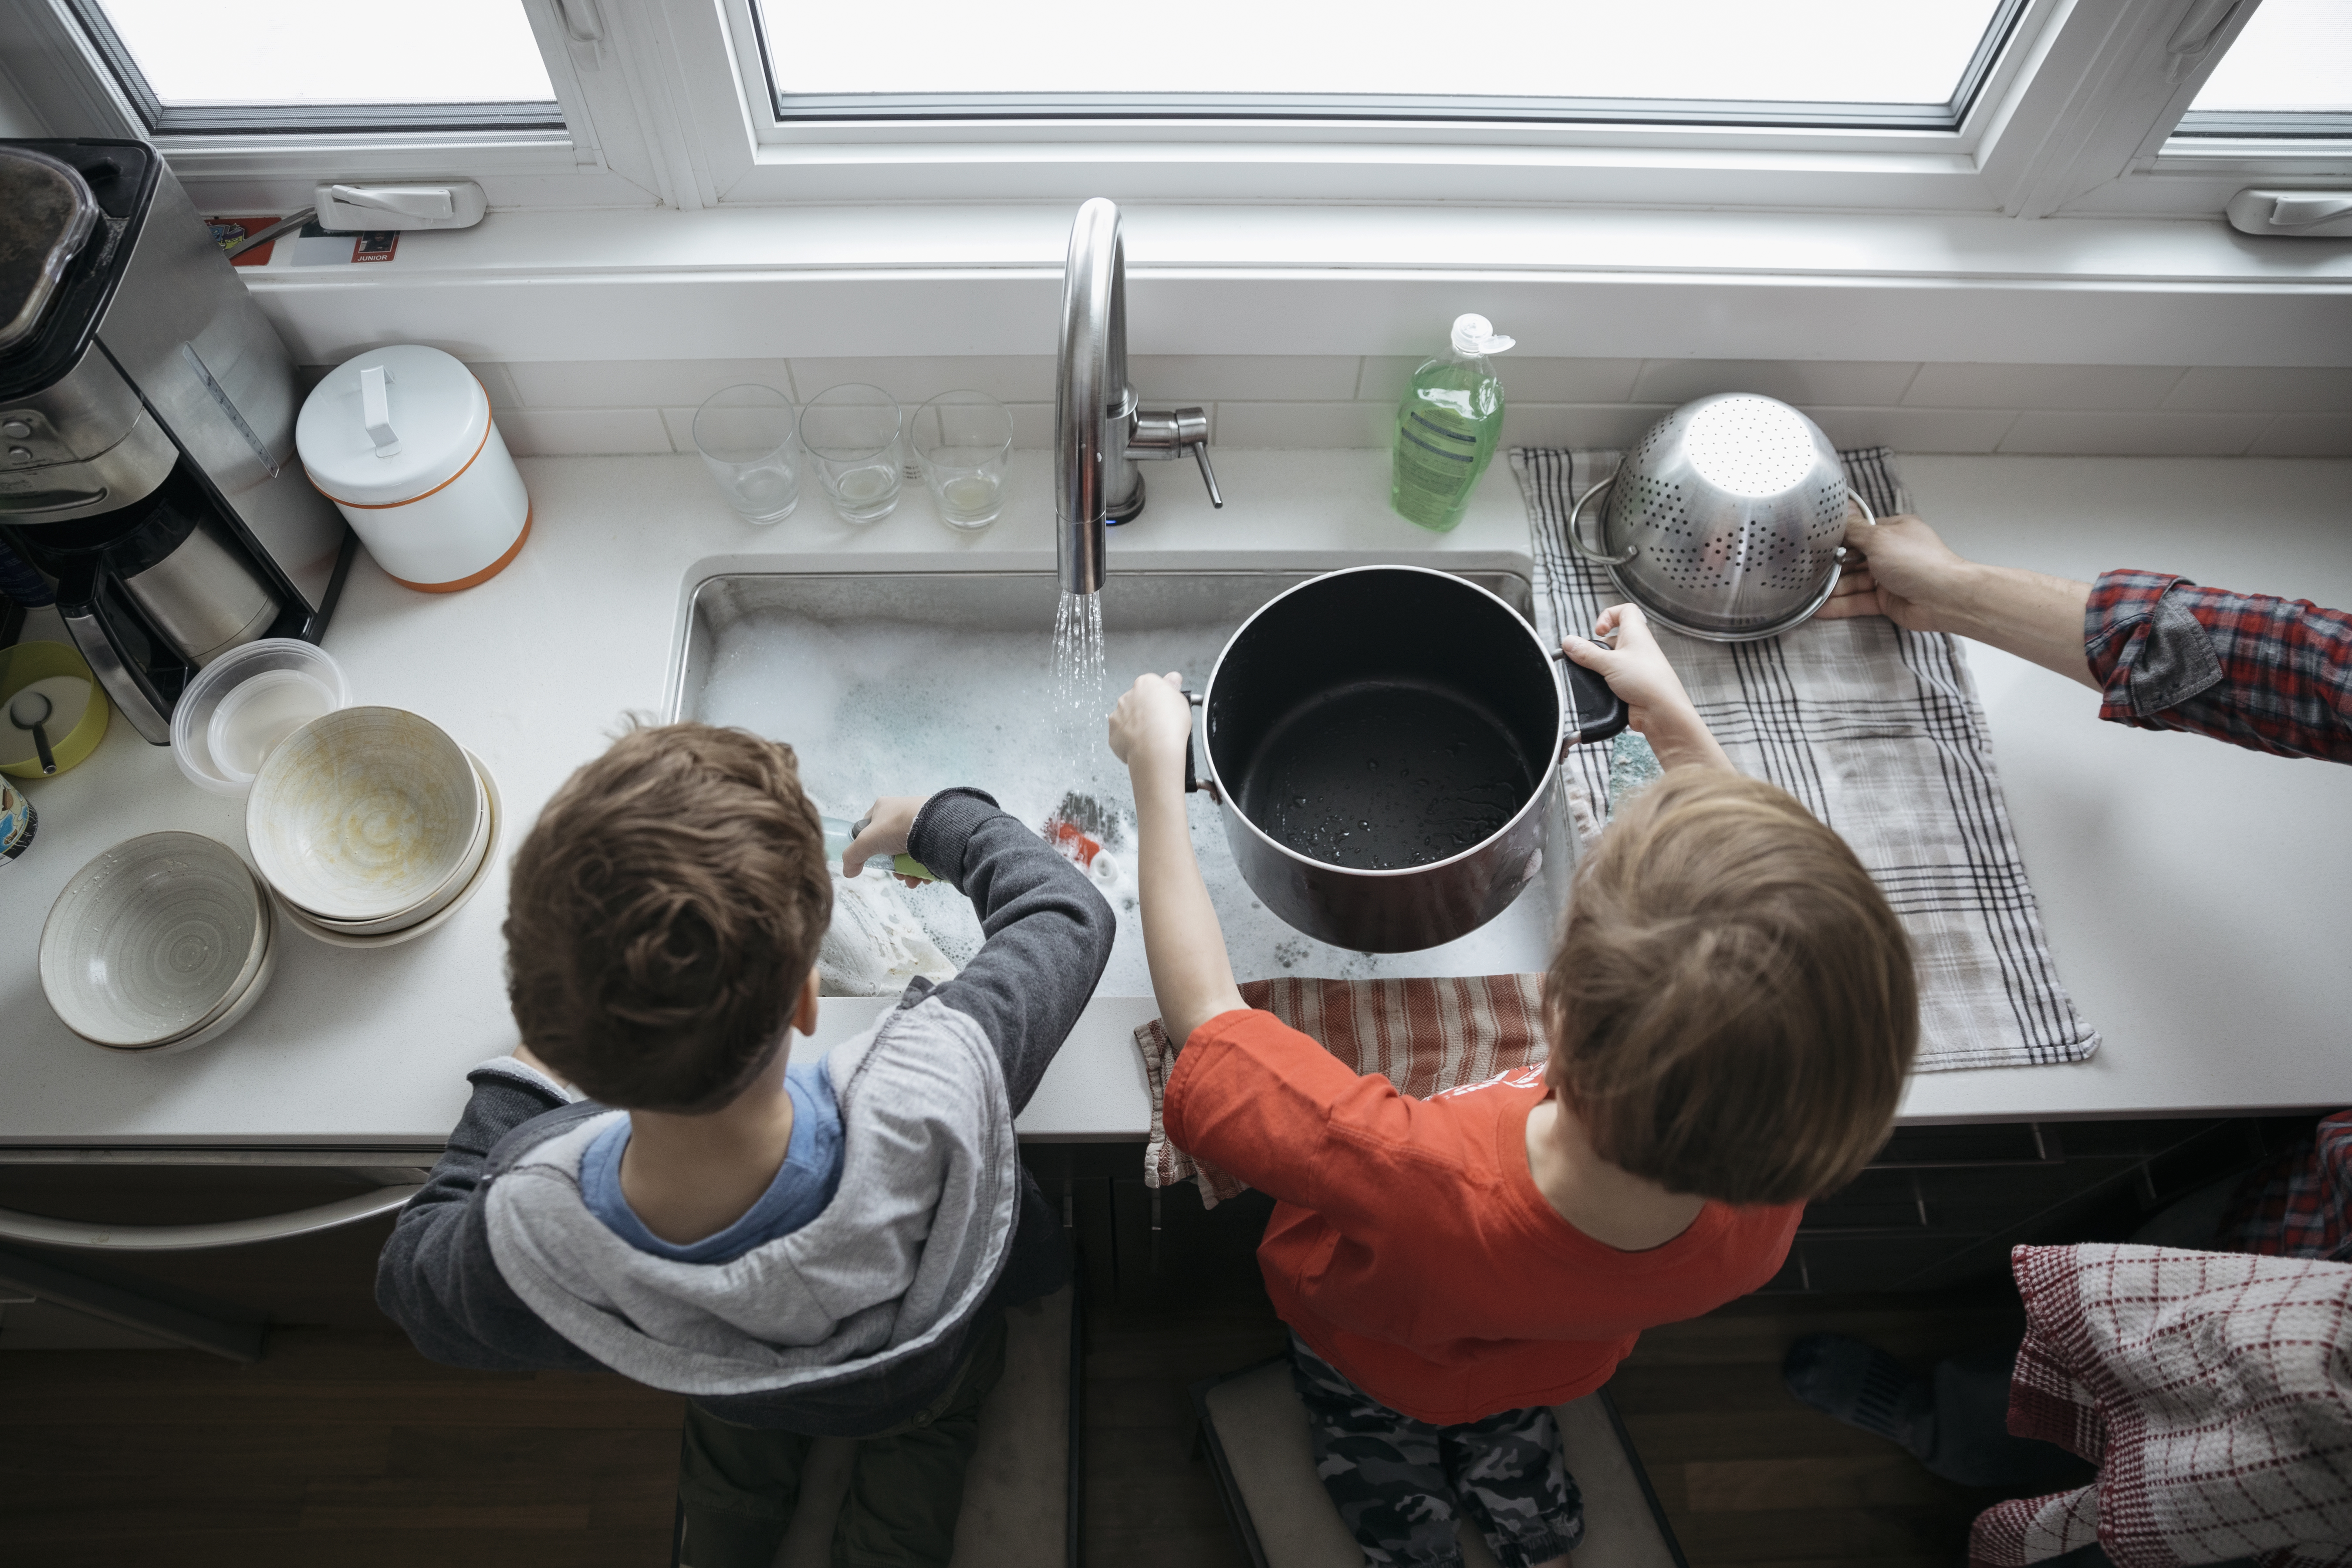 How to Wash Dishes With Baking Soda & Vinegar